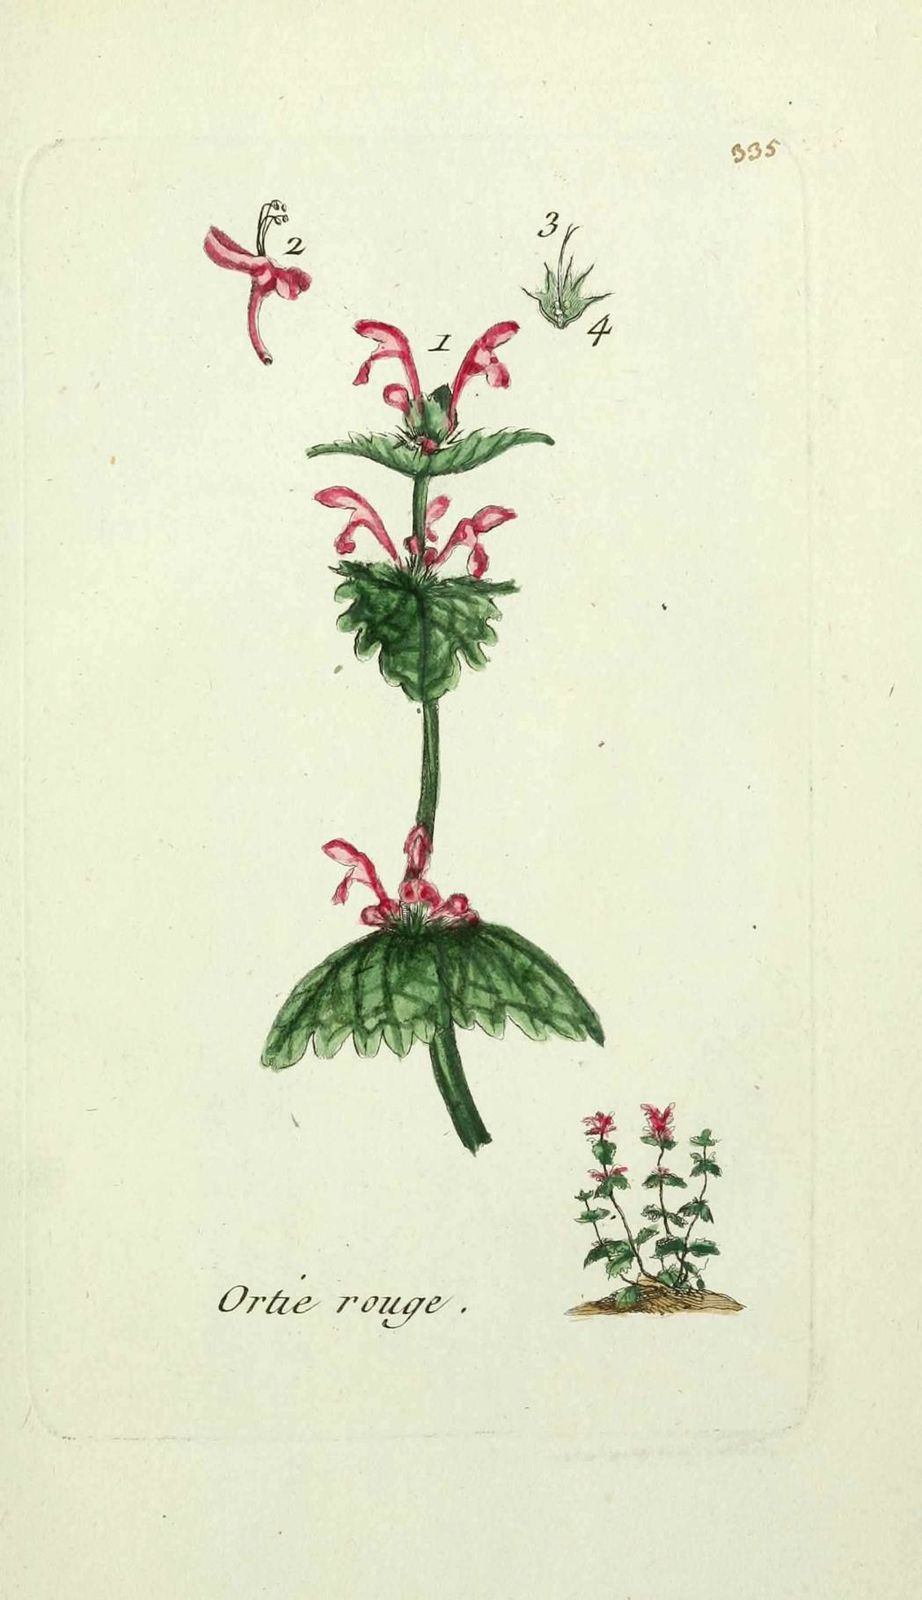 ortie rouge - lamium amplexicaule ( archangelique rouge, or